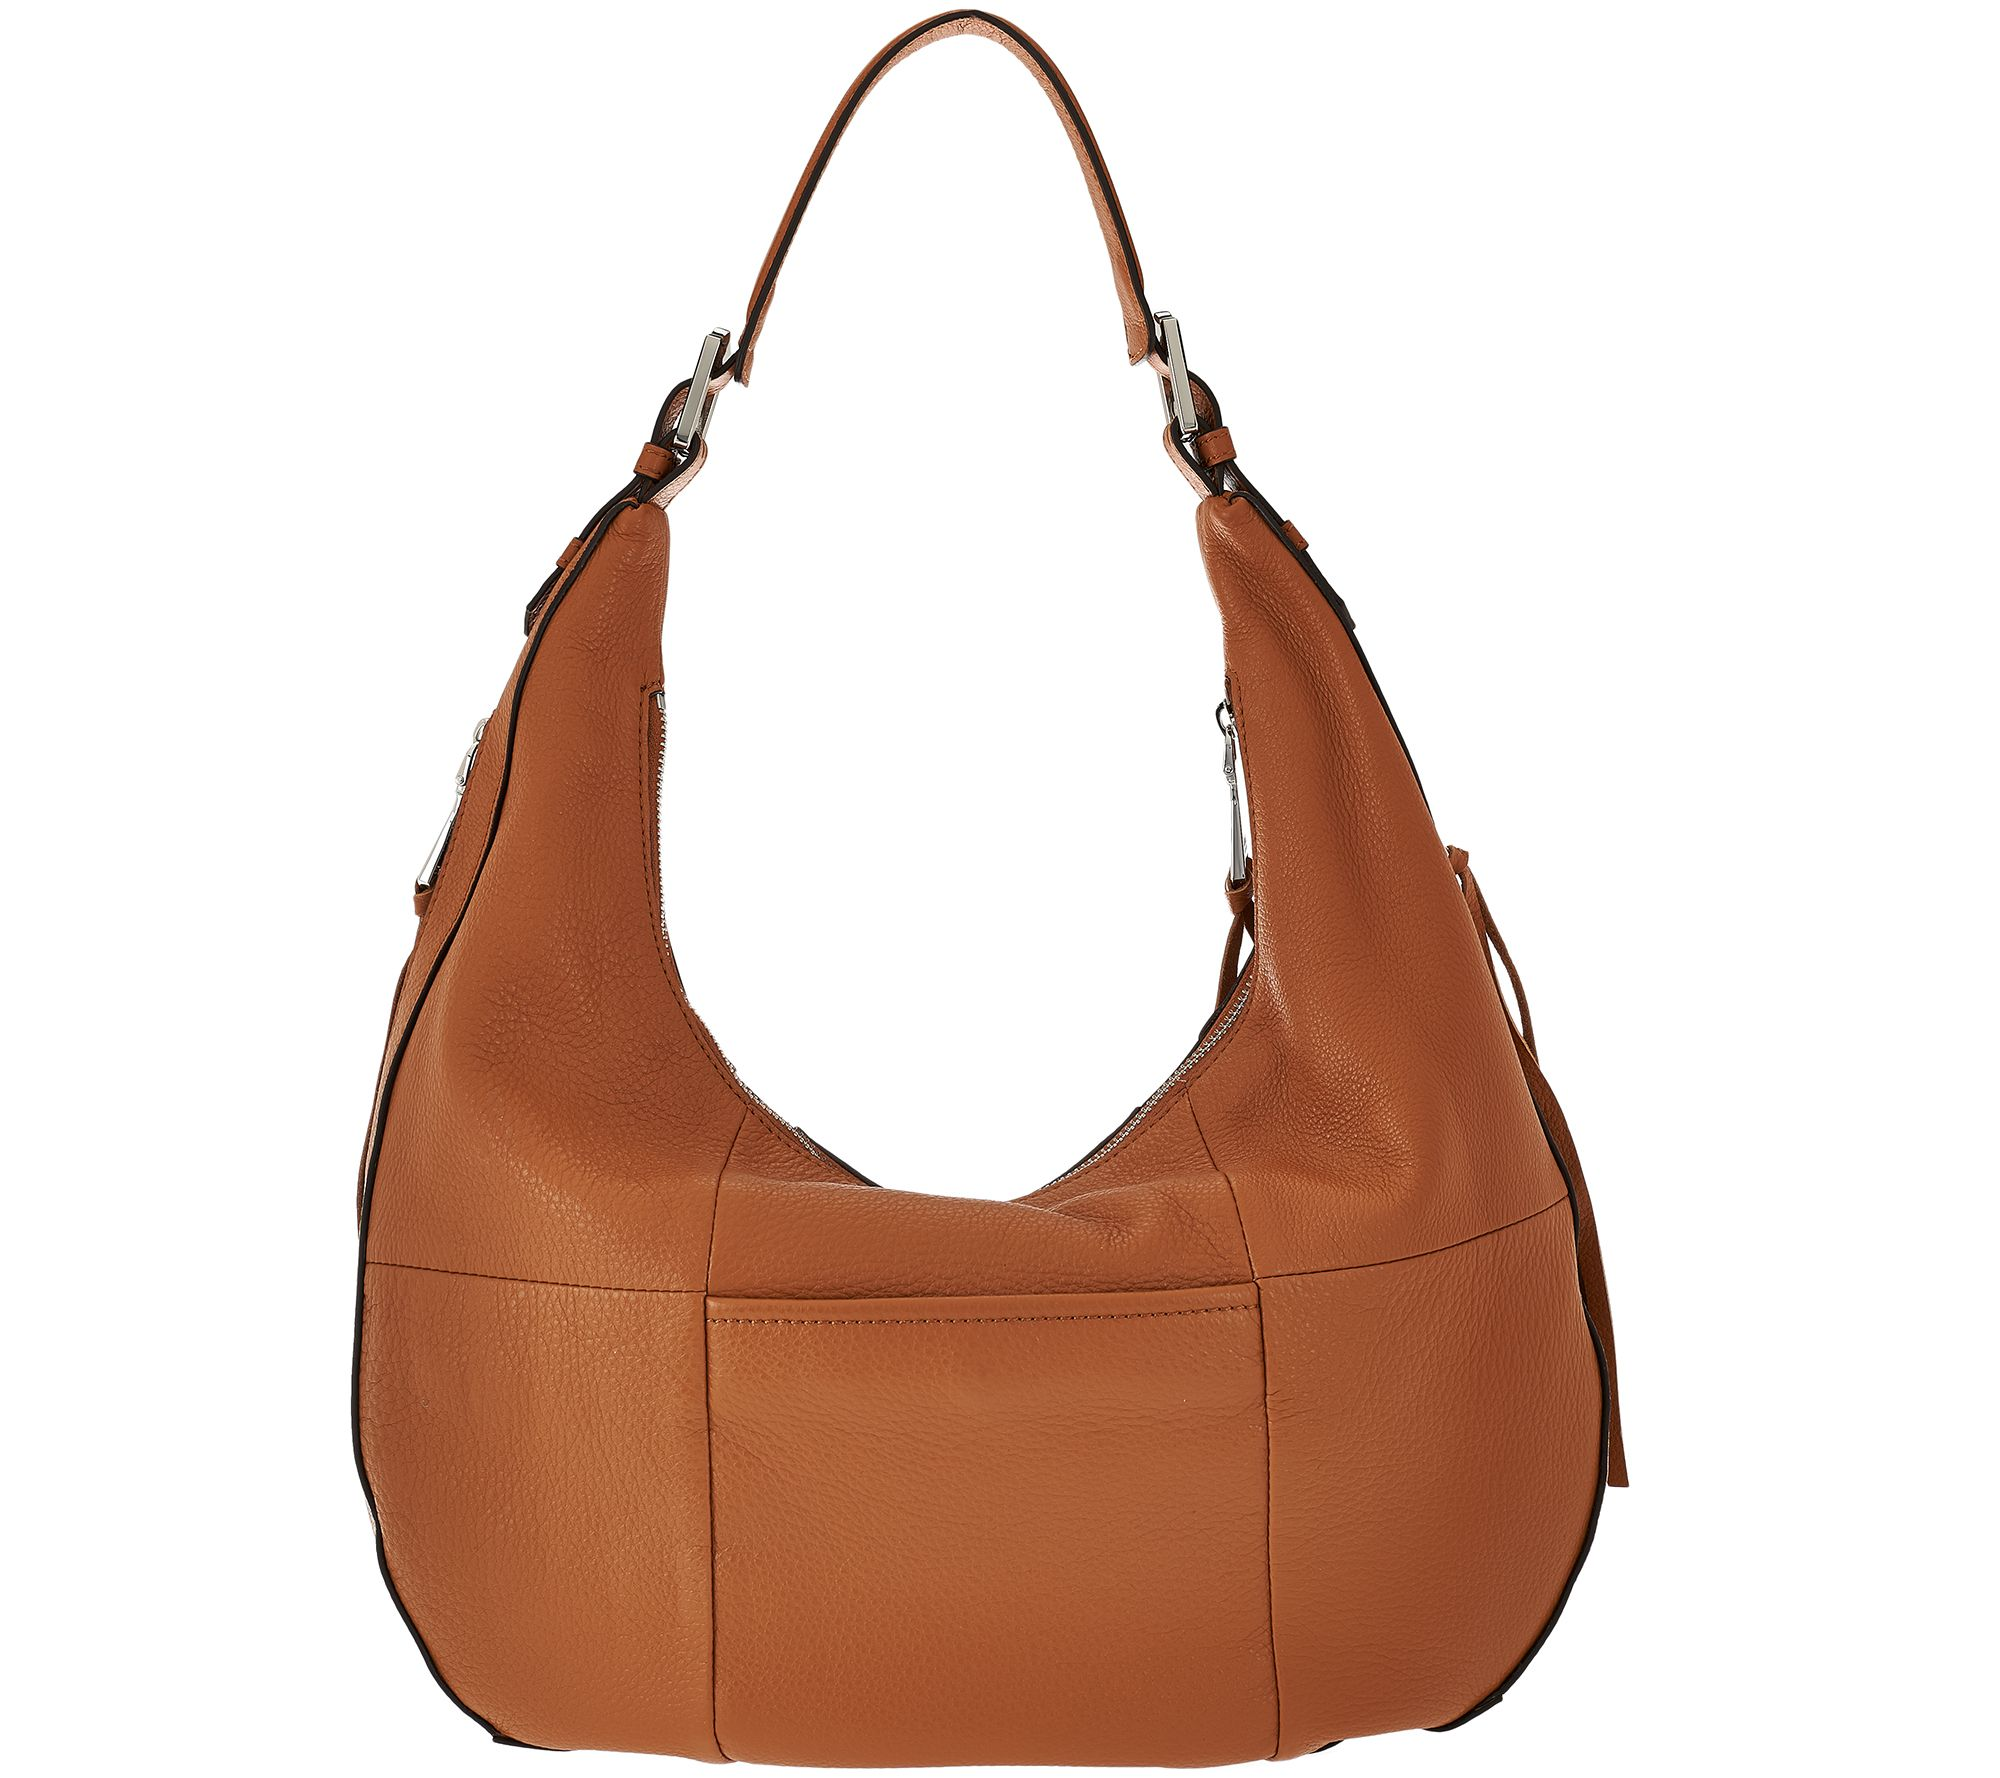 1cfe7f9d07 Aimee Kestenberg Pebble Leather Hobo - Genny - Page 1 — QVC.com